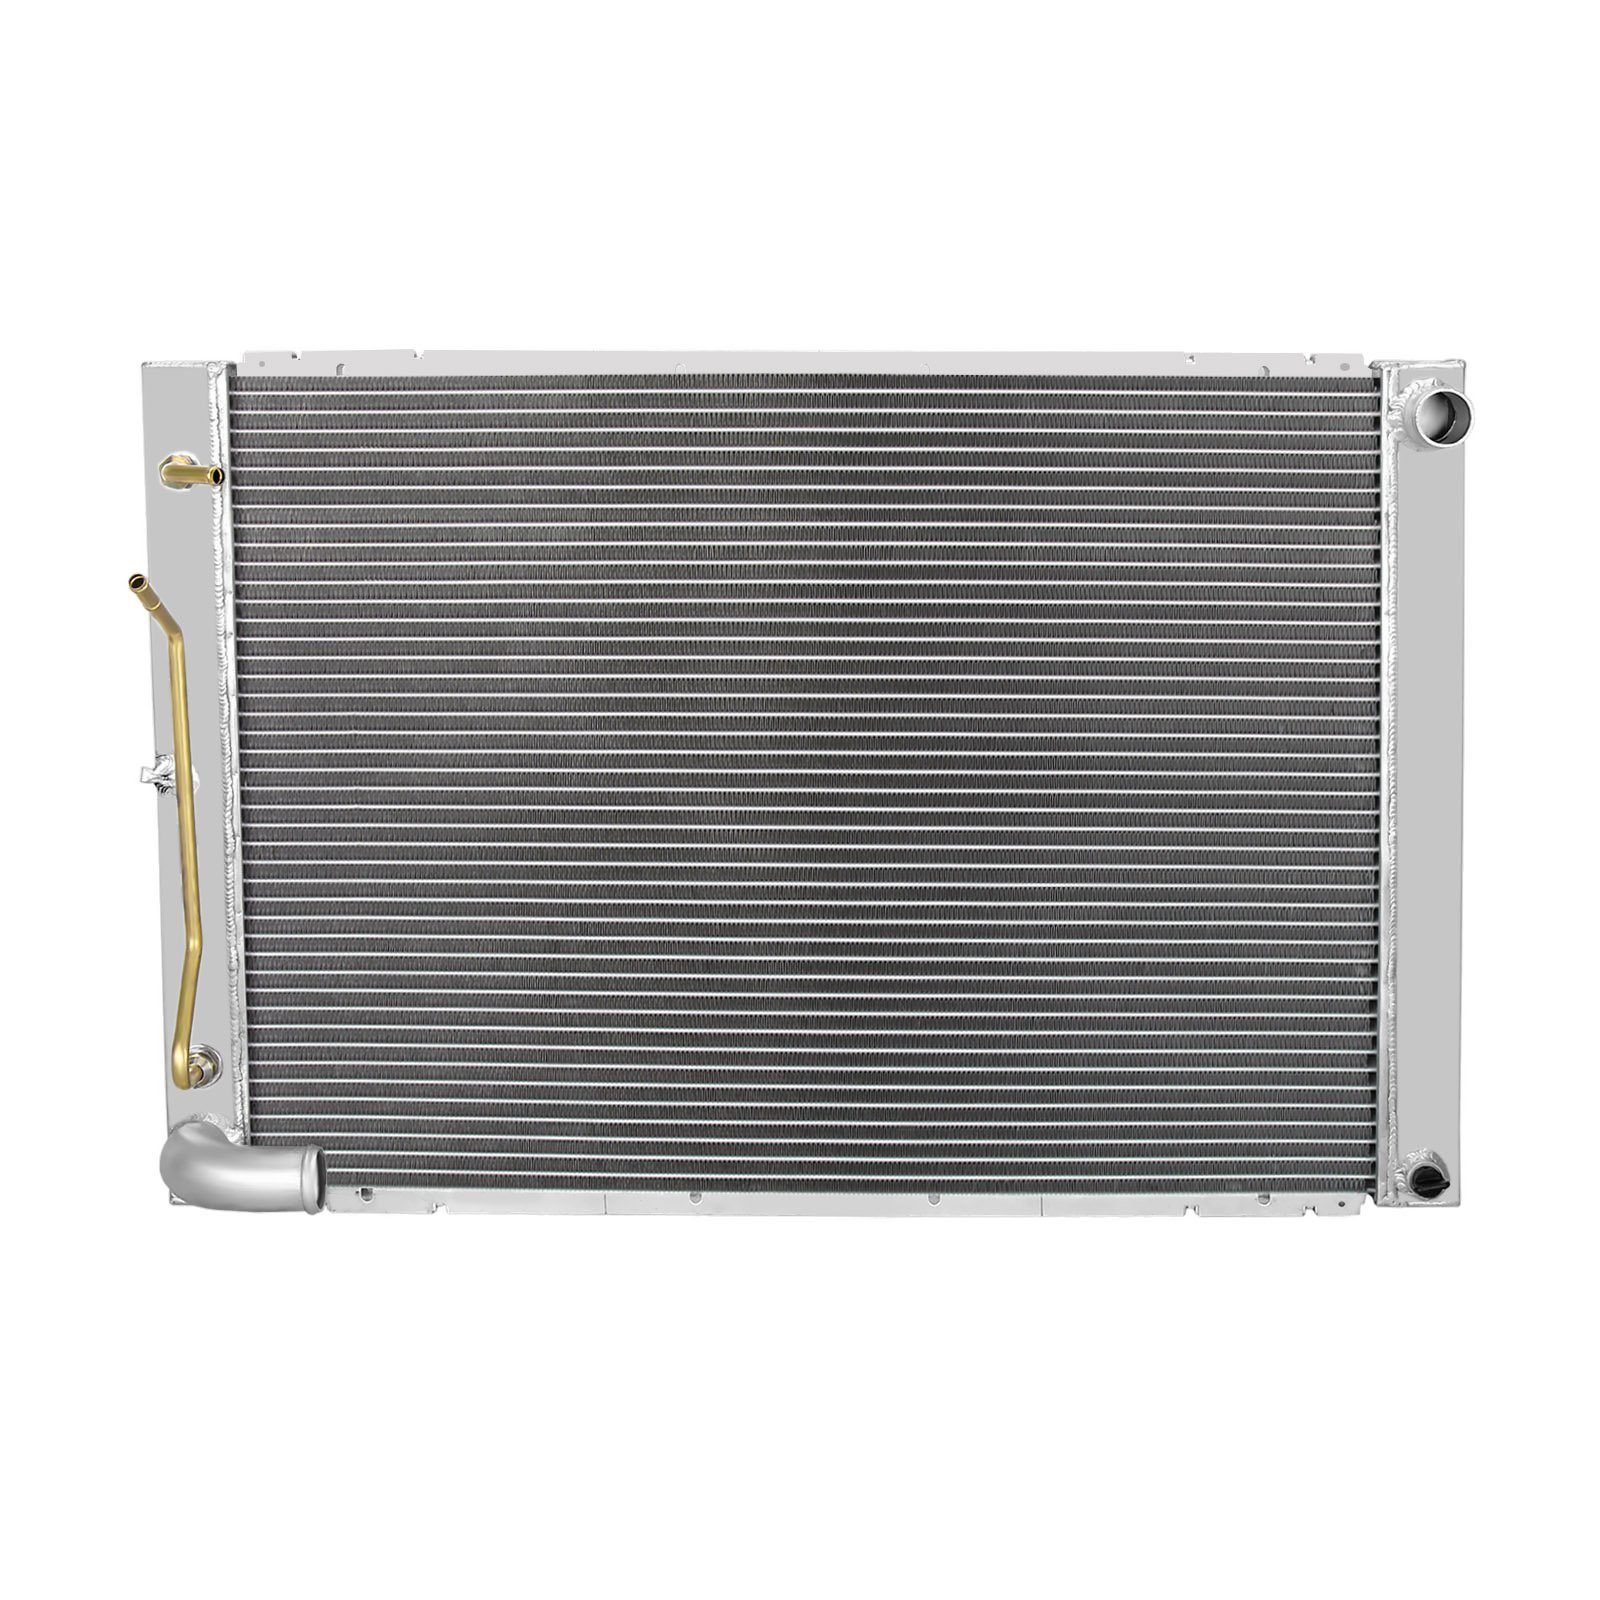 New Radiator All Aluminum For 2004 2005 2006 Toyota Sienna 3.3L V6 AT